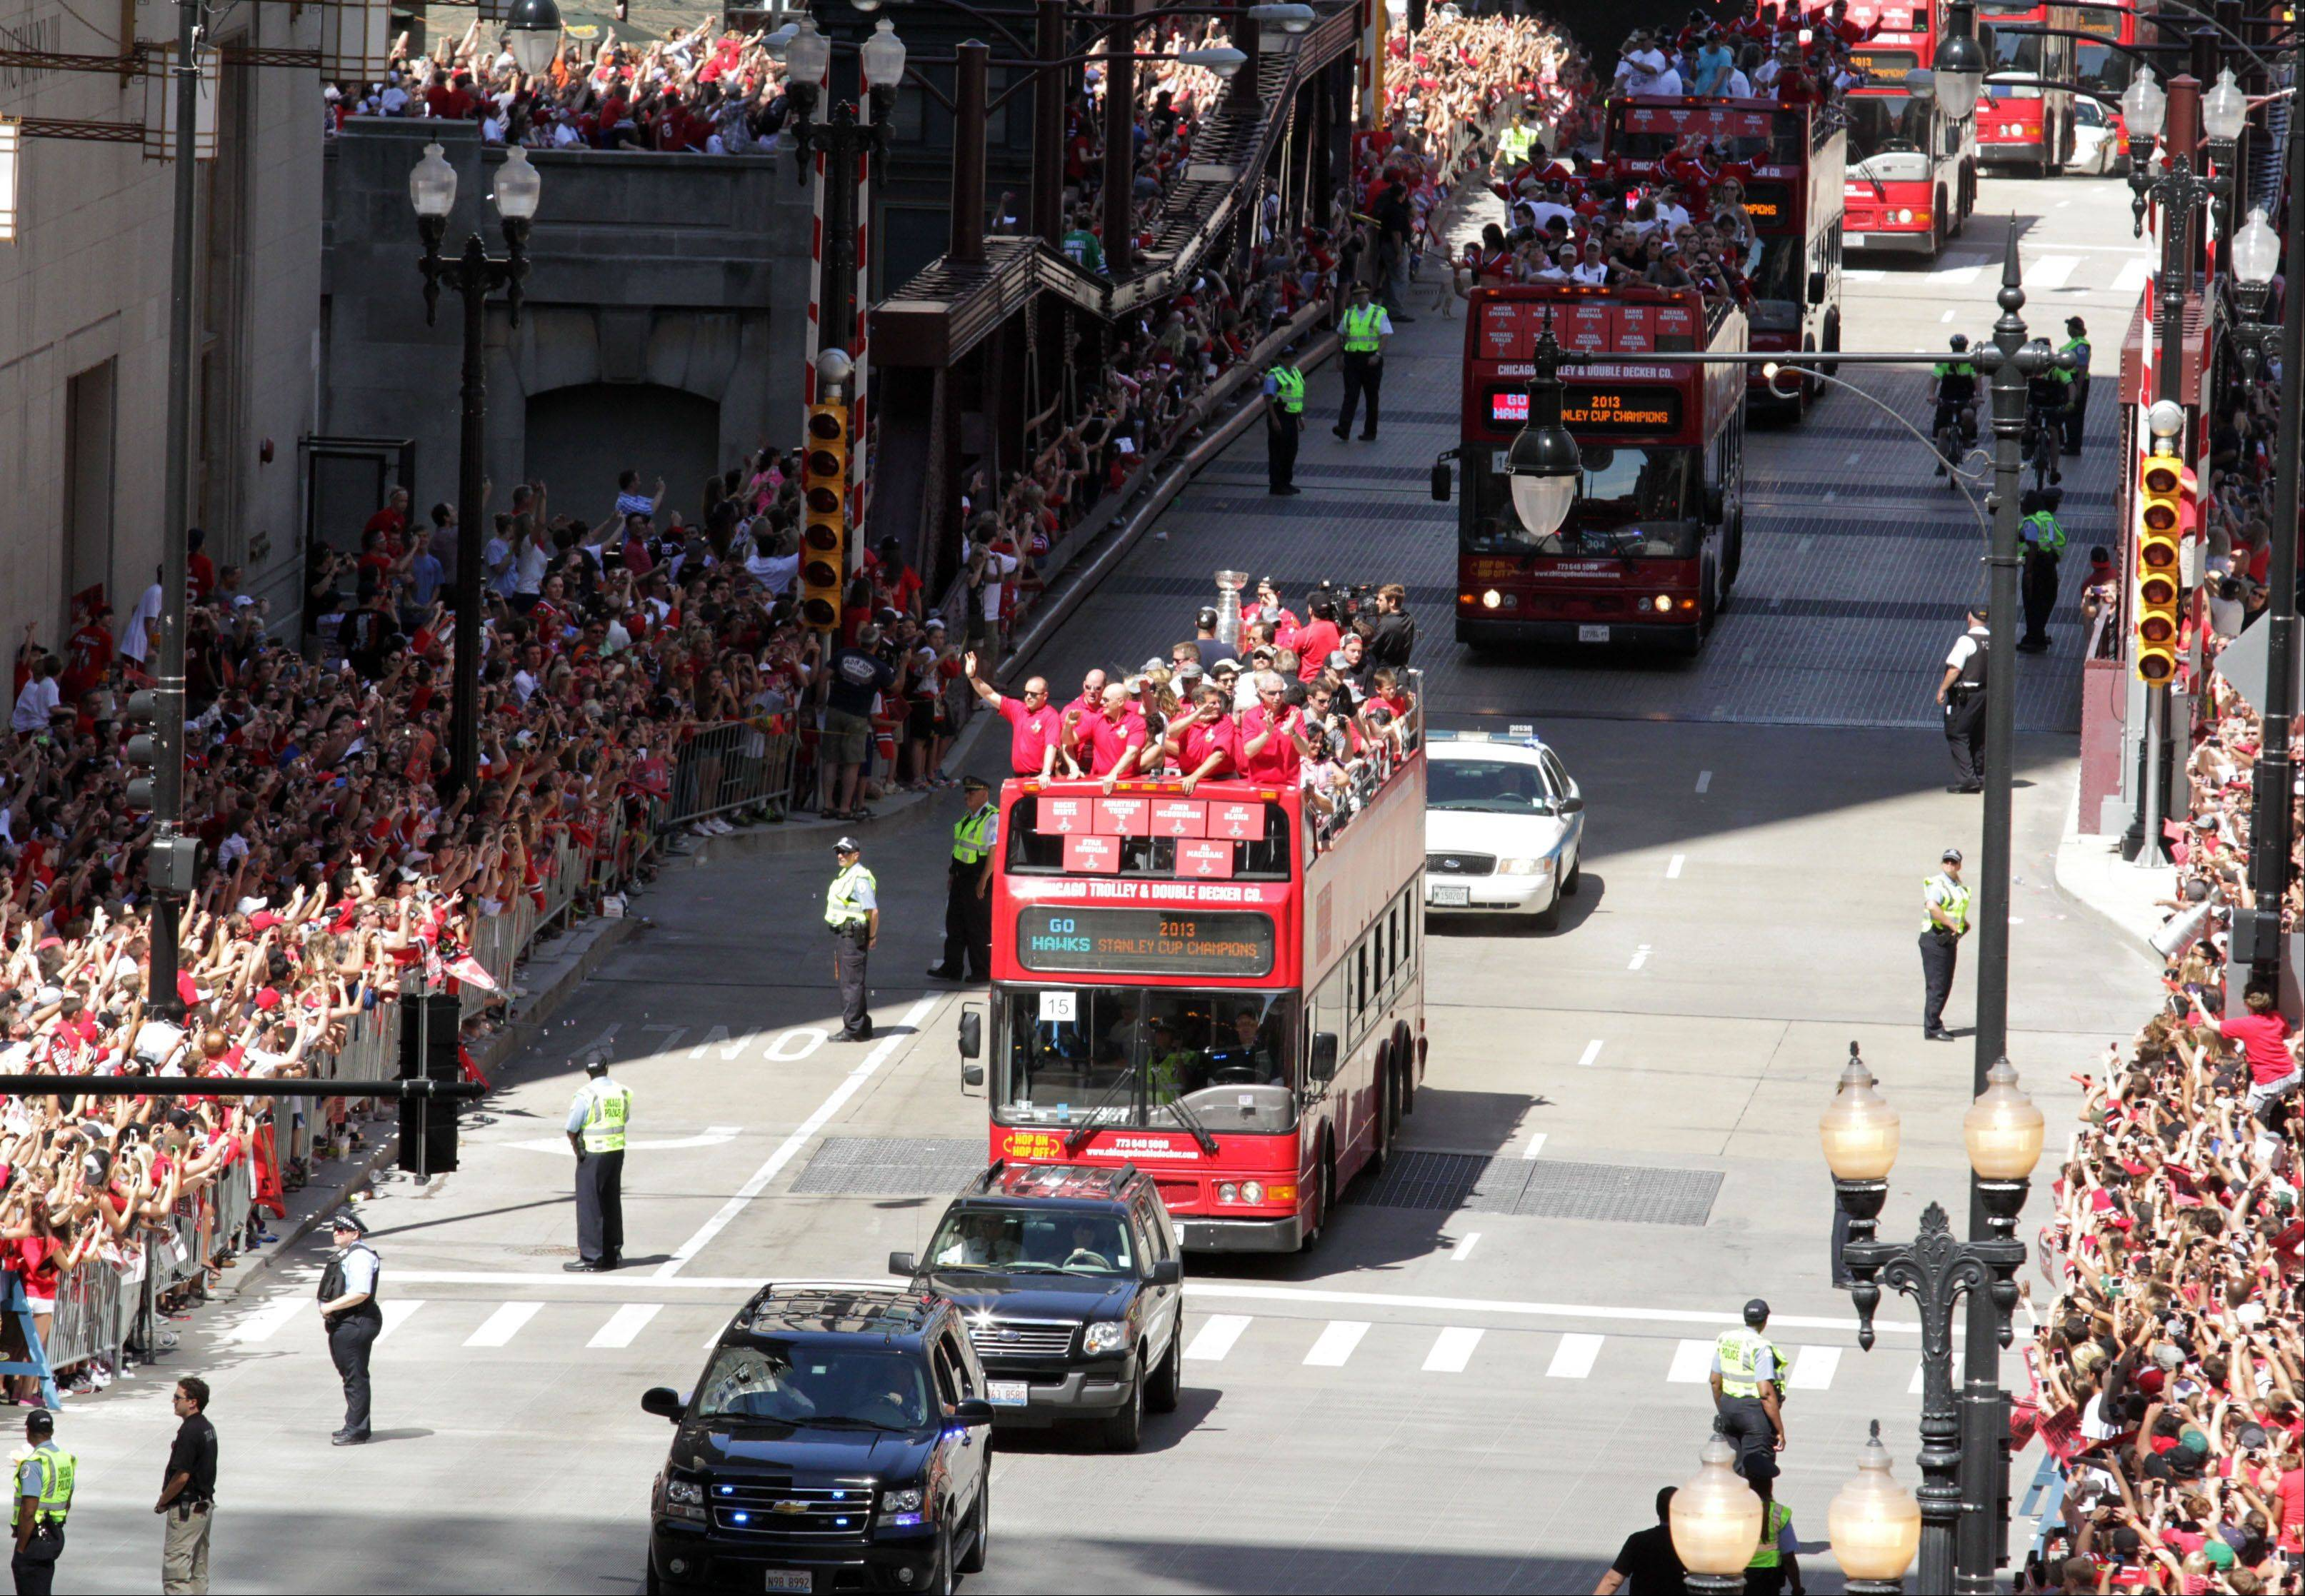 The Blackhawks Stanley Cup parade travels east on Washington Street to Michigan Avenue in Chicago on Friday.